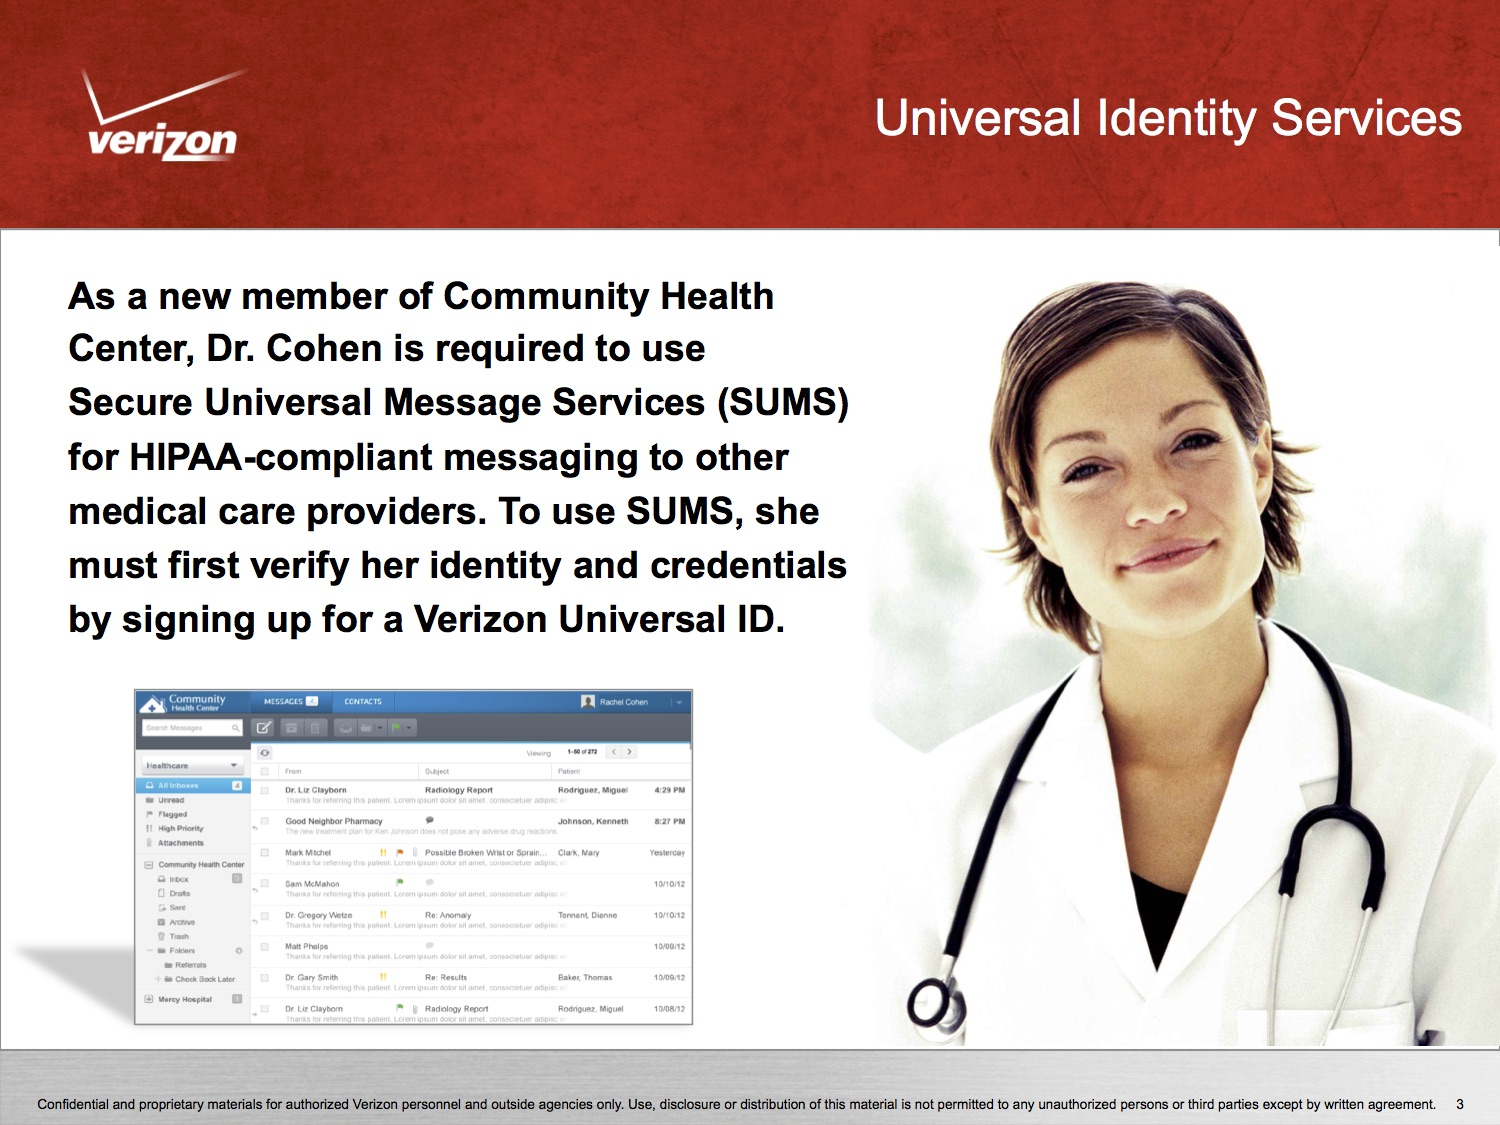 img/verizon-uis/designsbytravis-ideate-Verizon-UIS-HIMSS-Demo3.jpg